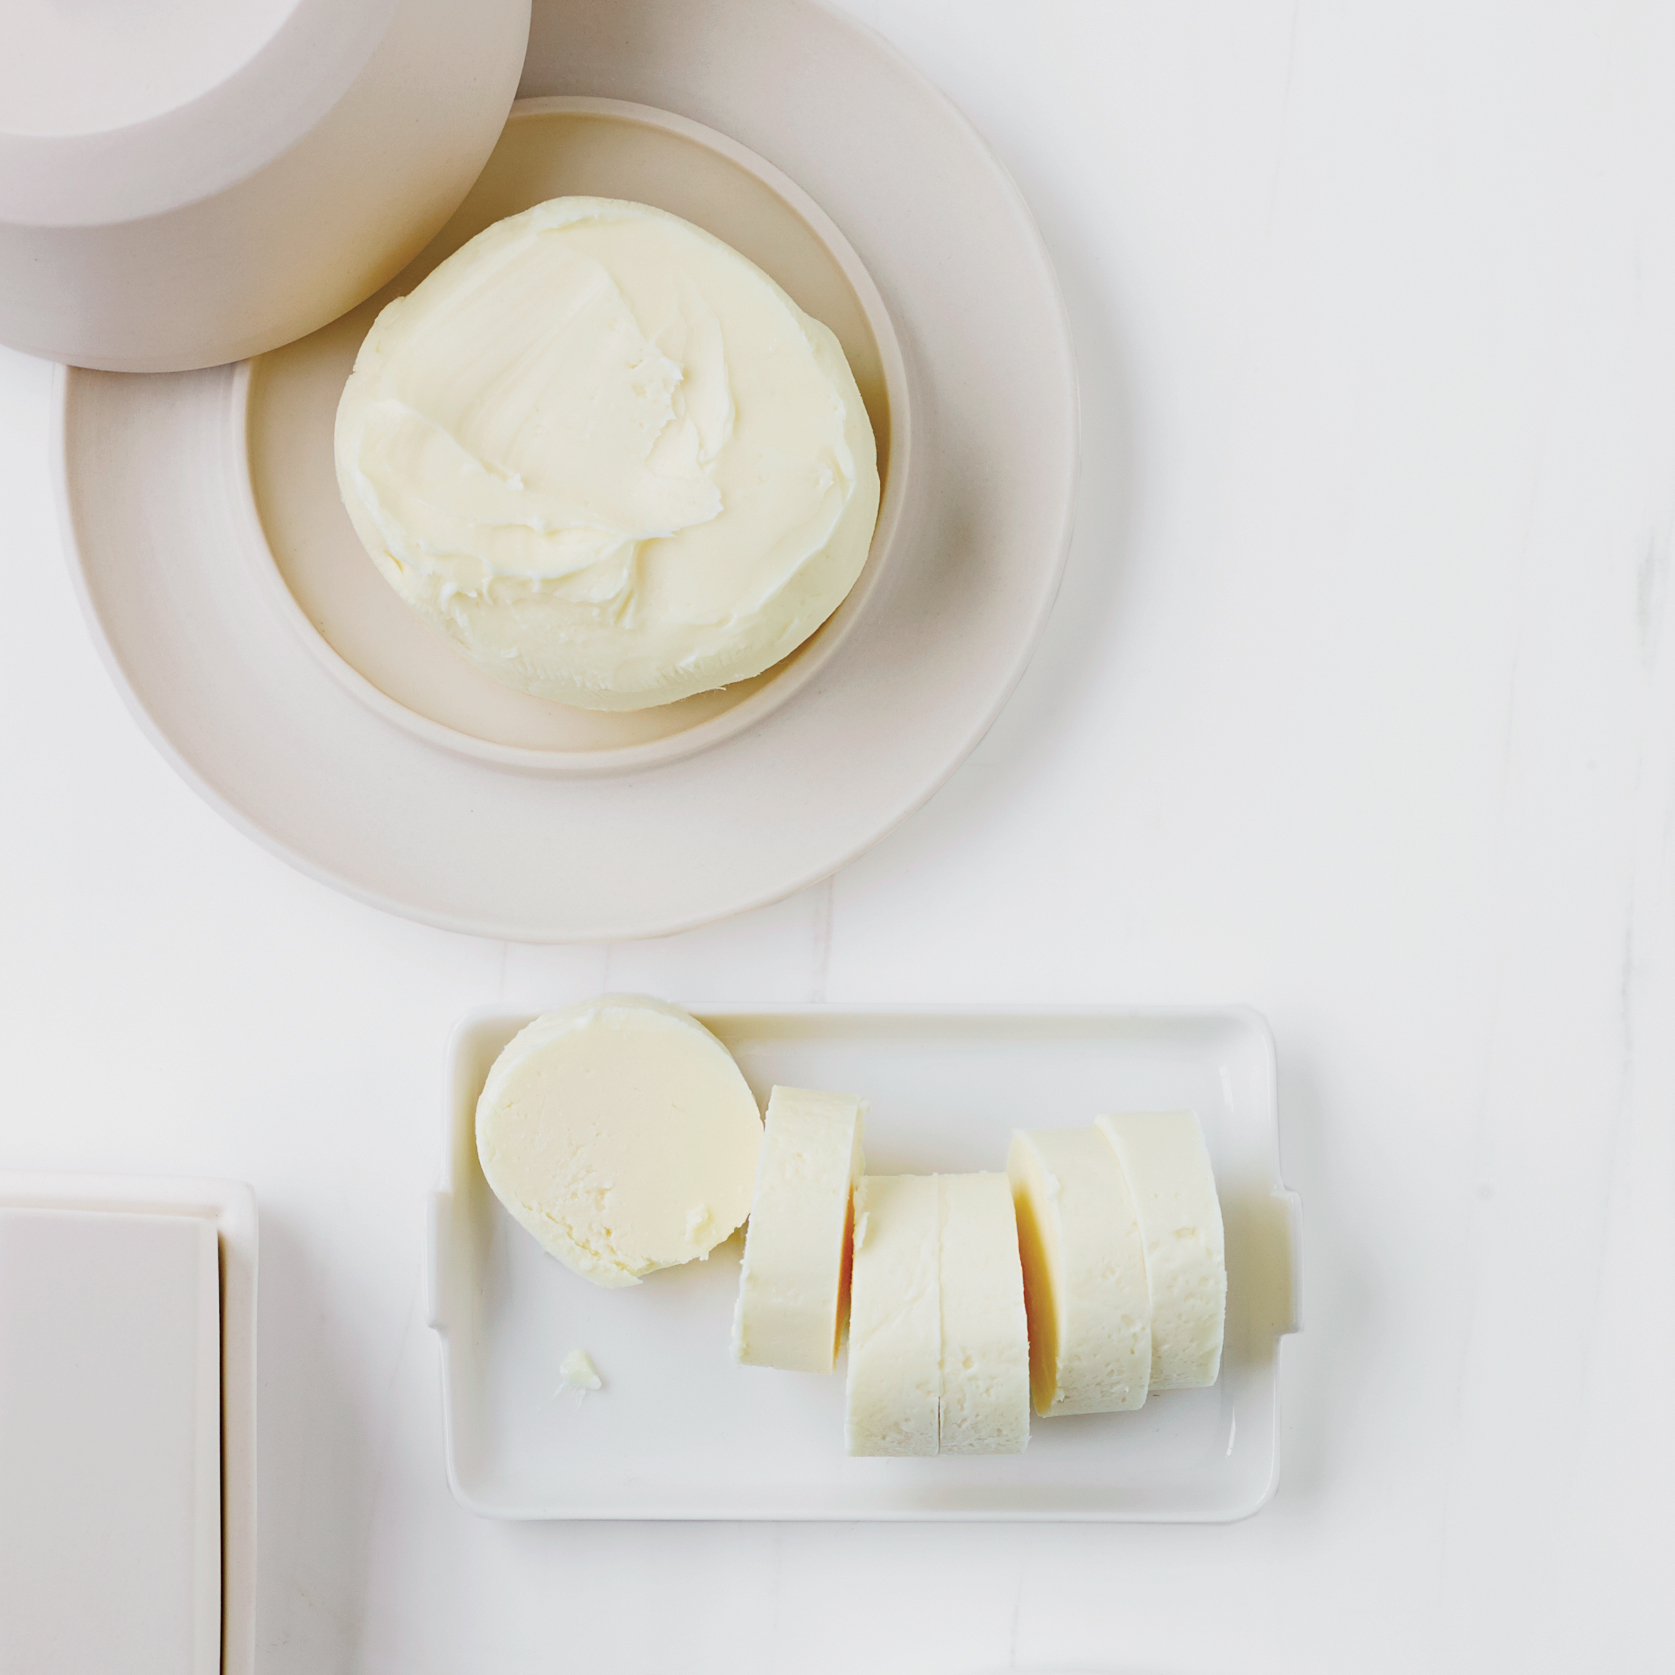 This Magical Device Turns Butter into Spray